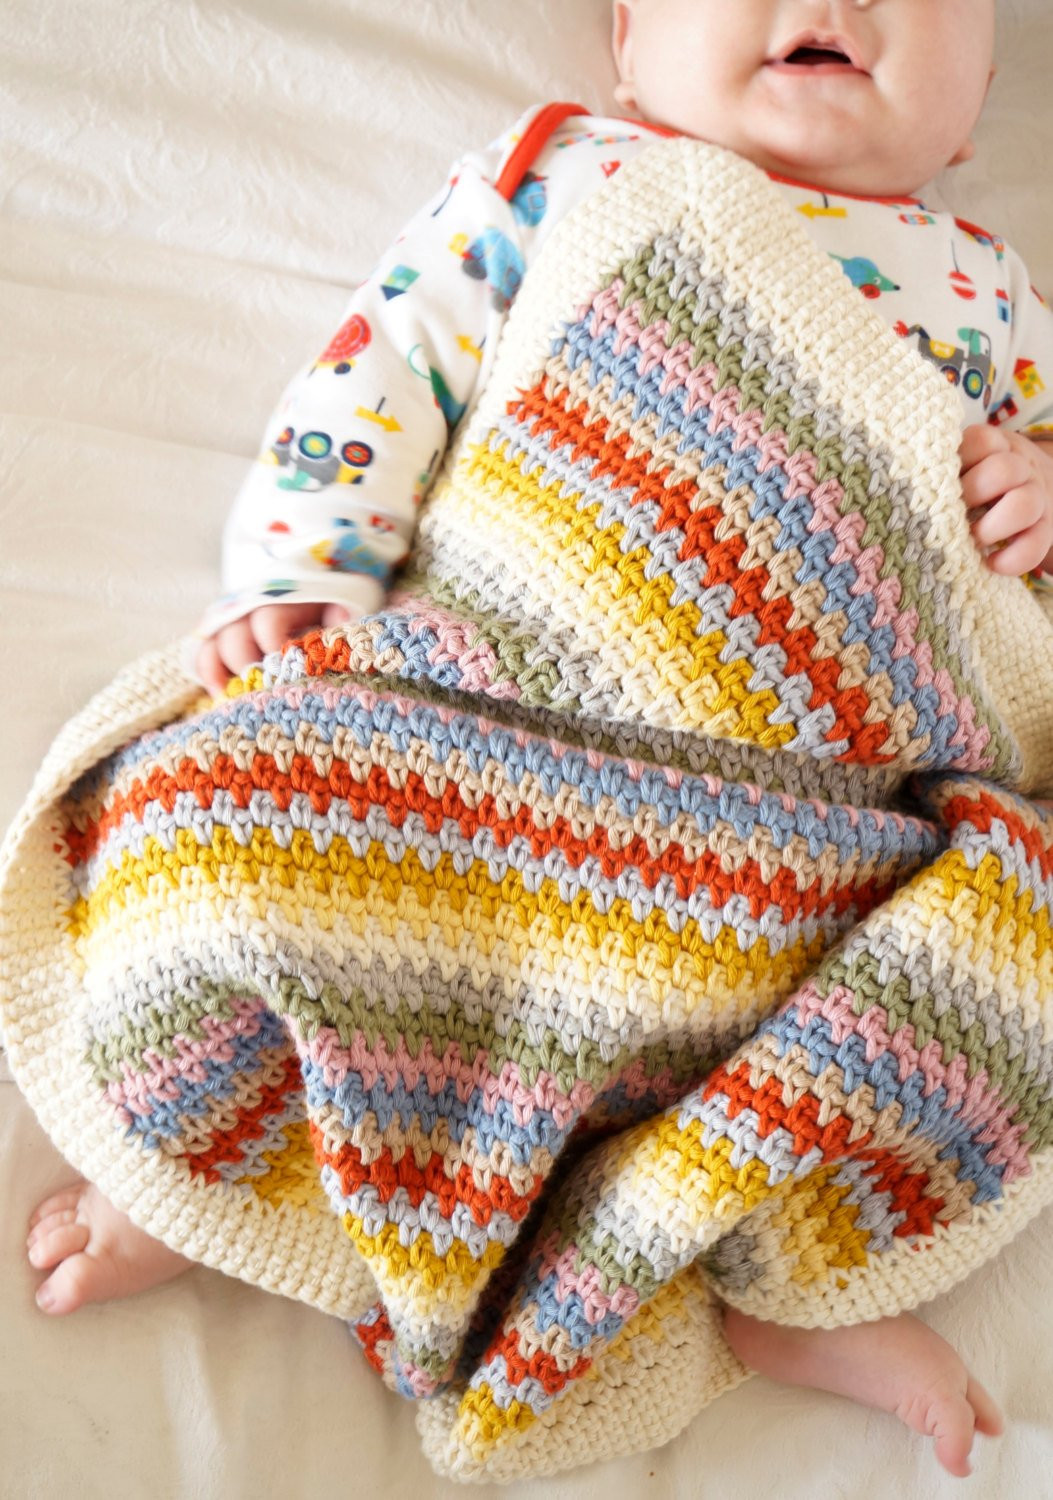 Crochet toddler Blanket Best Of Baby Afghan Patterns Easy Crochet Beginner Pattern Boy Of Amazing 41 Ideas Crochet toddler Blanket